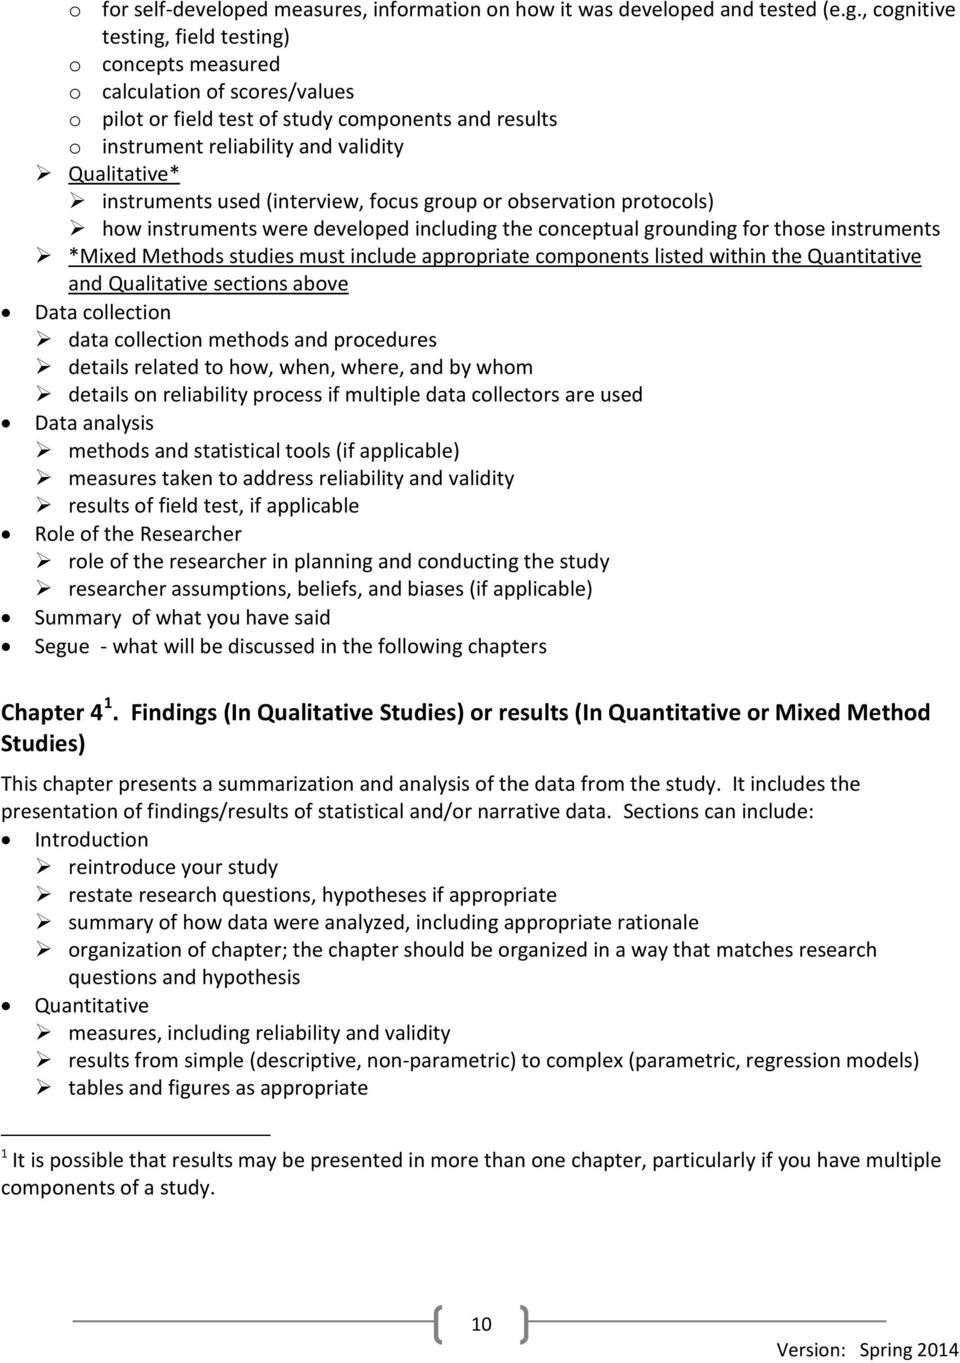 instruments used (interview, focus group or observation protocols) how instruments were developed including the conceptual grounding for those instruments *Mixed Methods studies must include